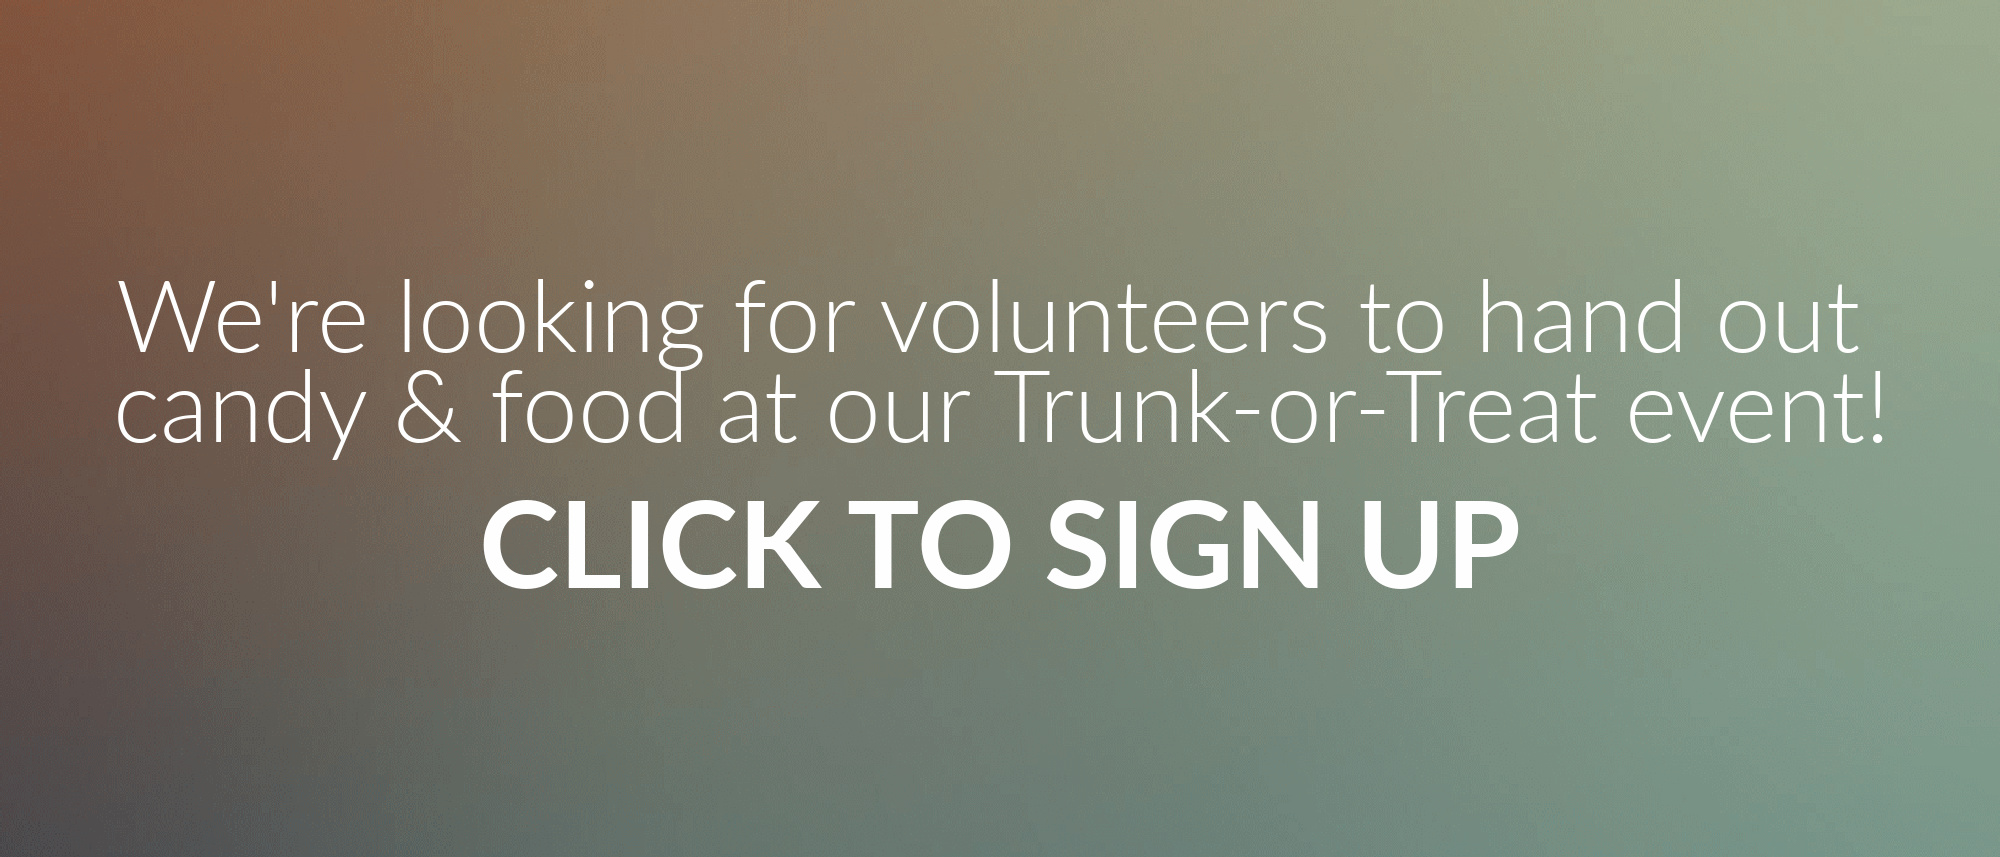 Looking for volunteers to hand out food and candy at our Trunk or Treat event at Journey Church!